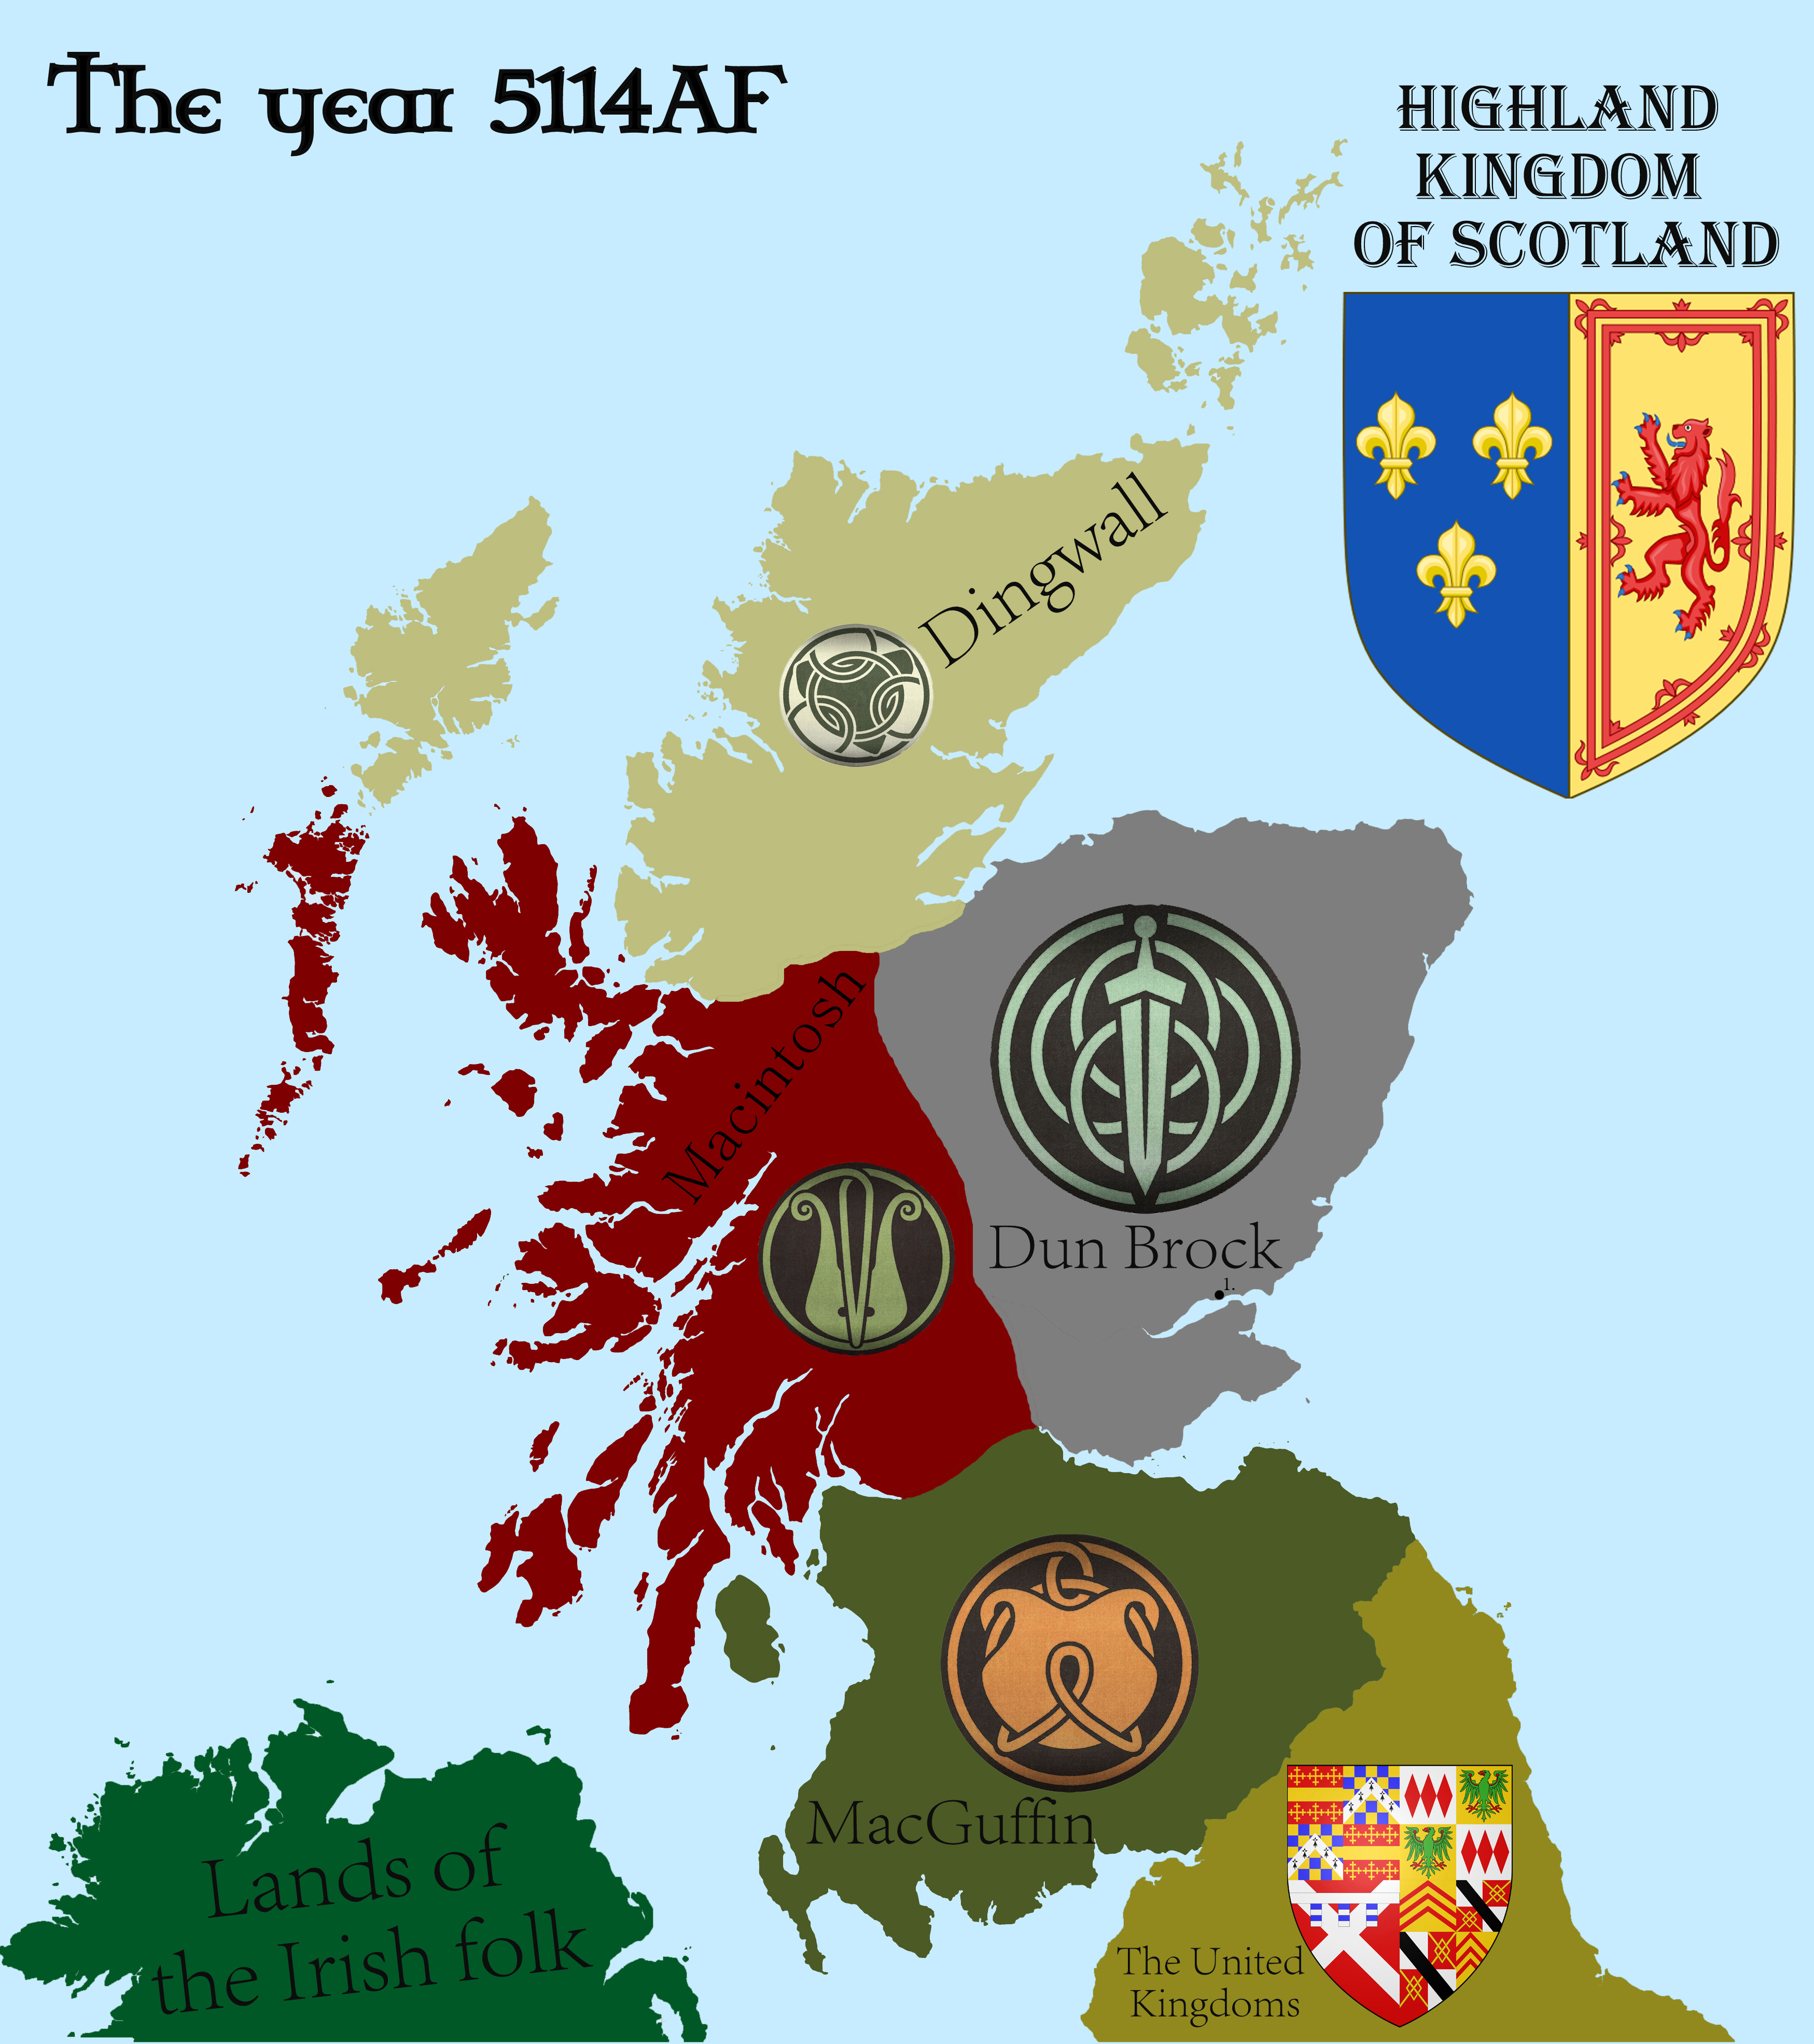 Highland Kingdom of Scotland by JabberwocksBane on DeviantArt on northern ireland, confederate states of america map, sukhothai kingdom map, battle of waterloo map, scottish people, firth of forth map, united states of america, kingdom of burgundy map, great britain, battle of bannockburn map, republic of ireland, empire of japan map, kingdom of jordan map, united kingdom, union of soviet socialist republics map, province of pennsylvania map, province of georgia map, loch ness, archduchy of austria map, khmer kingdom map, duchy of brittany map, battle of stirling bridge map, scottish highlands, grand duchy of tuscany map, new zealand, william wallace, kingdom of poland map, kingdom of saudi arabia map, ayutthaya kingdom map, kingdom of denmark map,